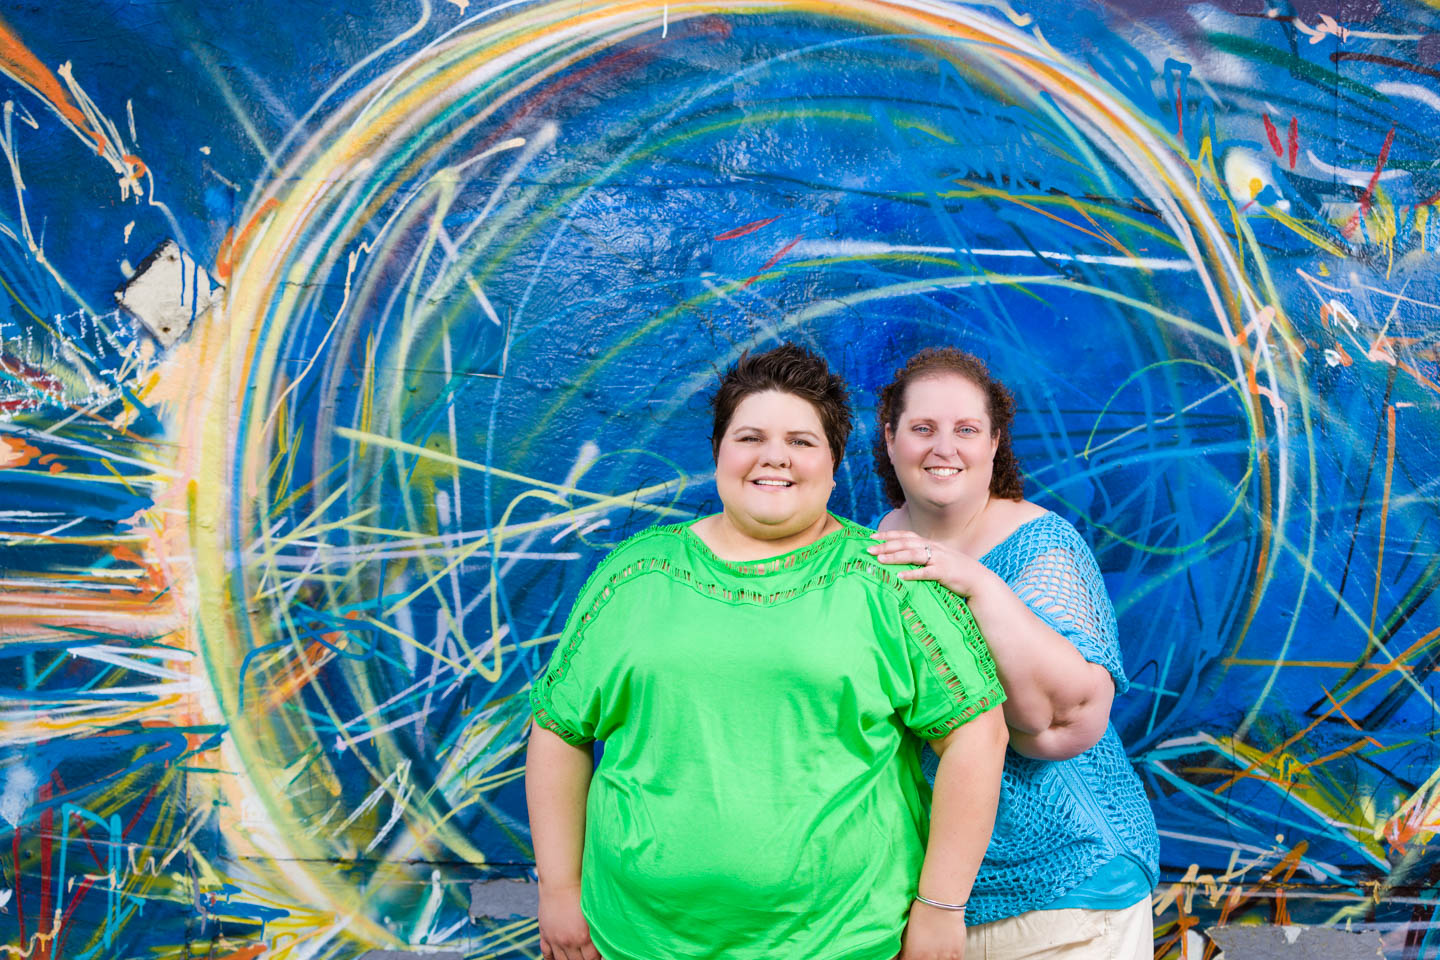 Celina and Jen and some graffiti